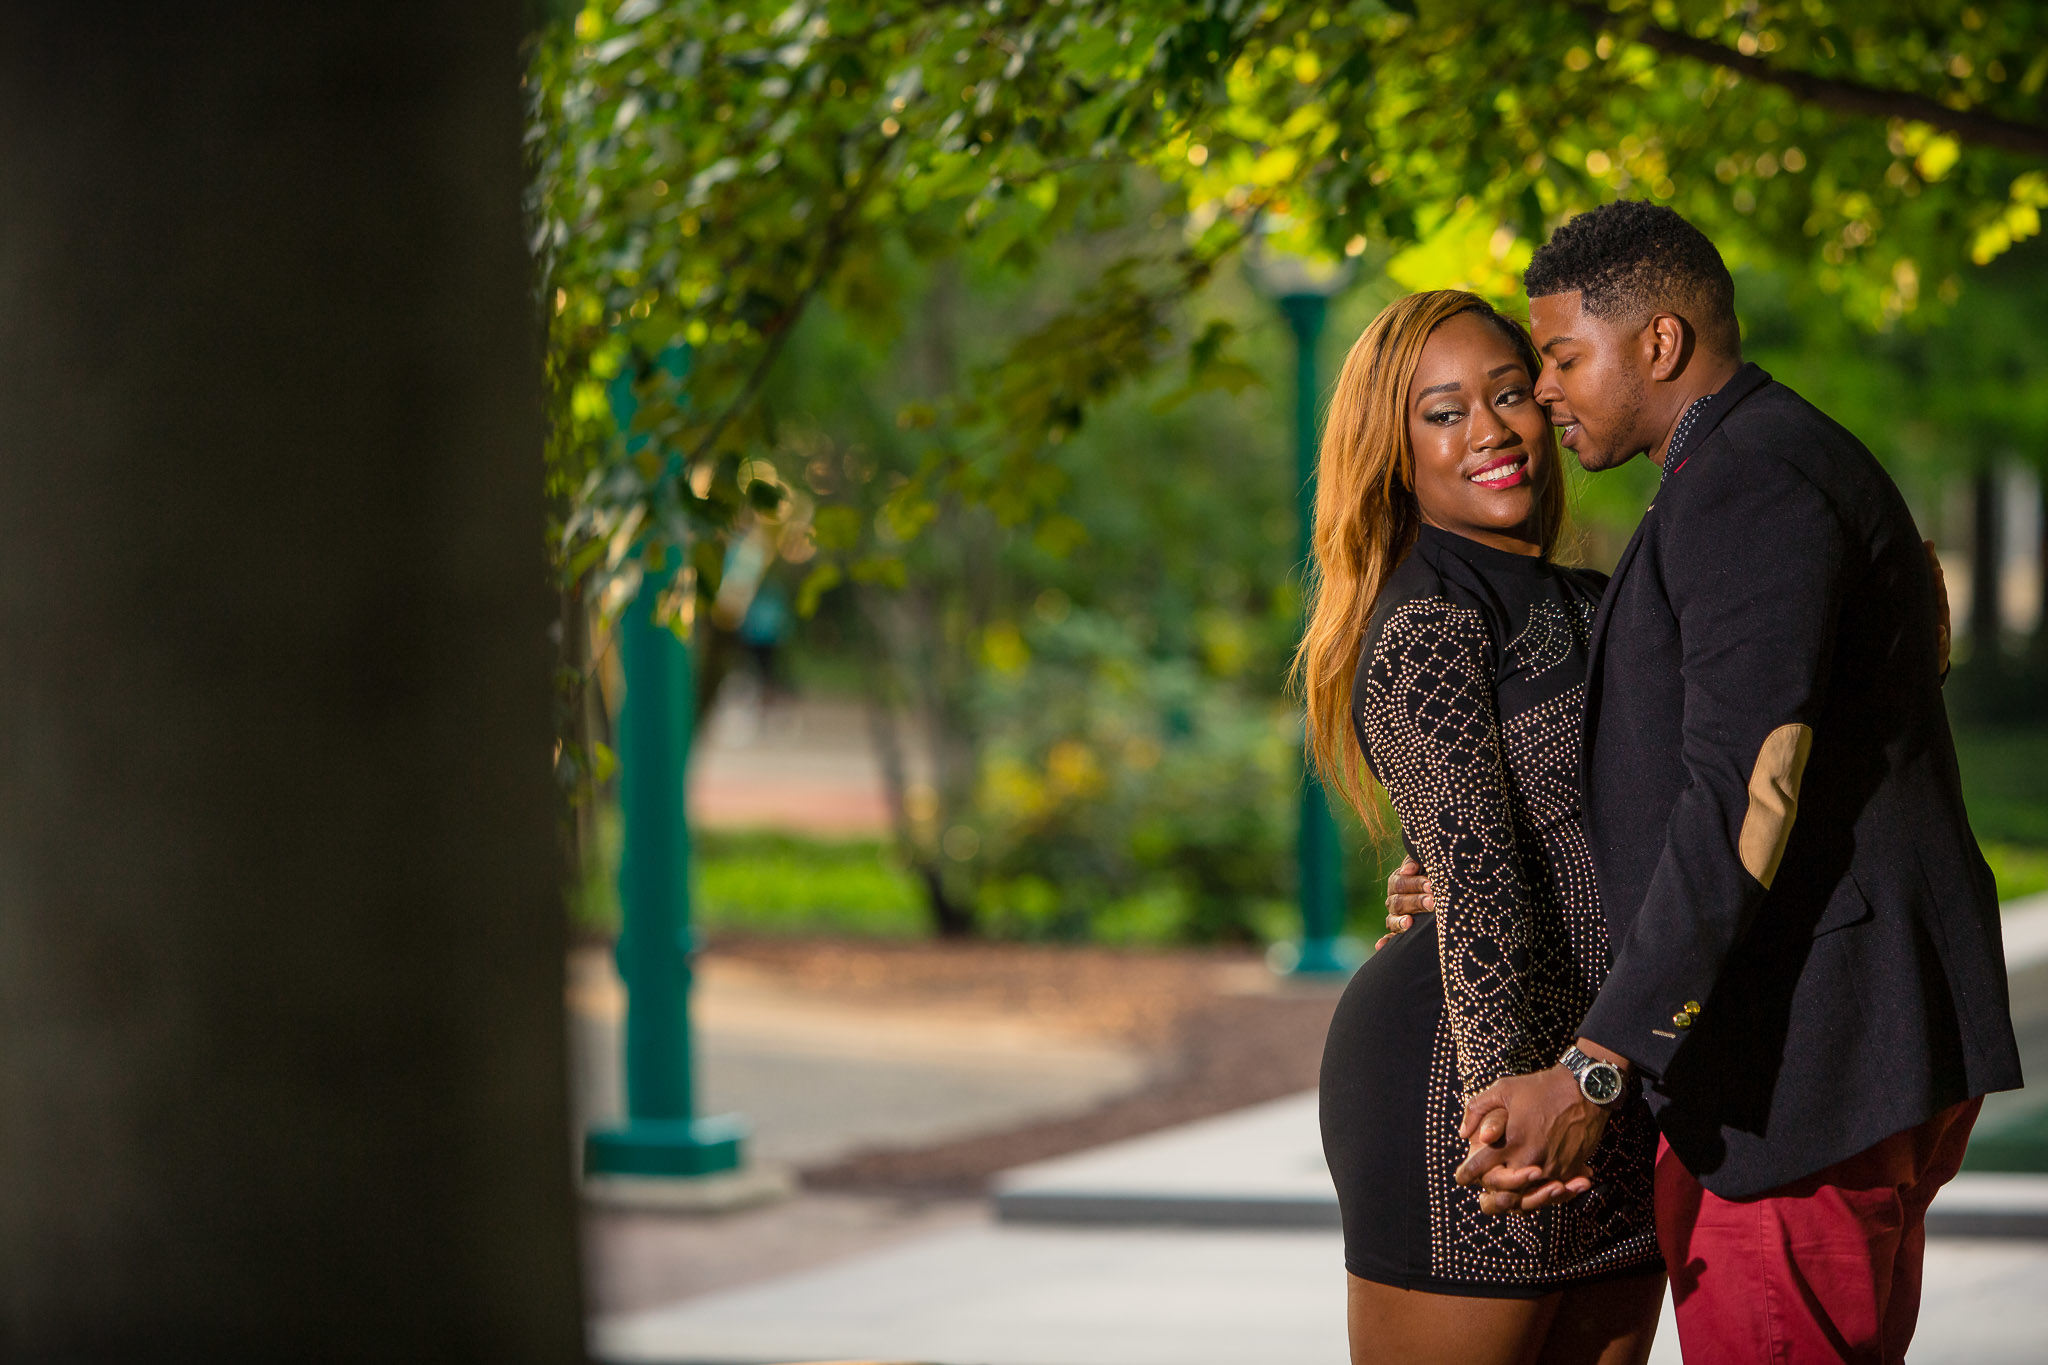 One of the best wedding photographers in Greenville SC portrait of an African American couple embracing for a candid portrait in Centennial Park